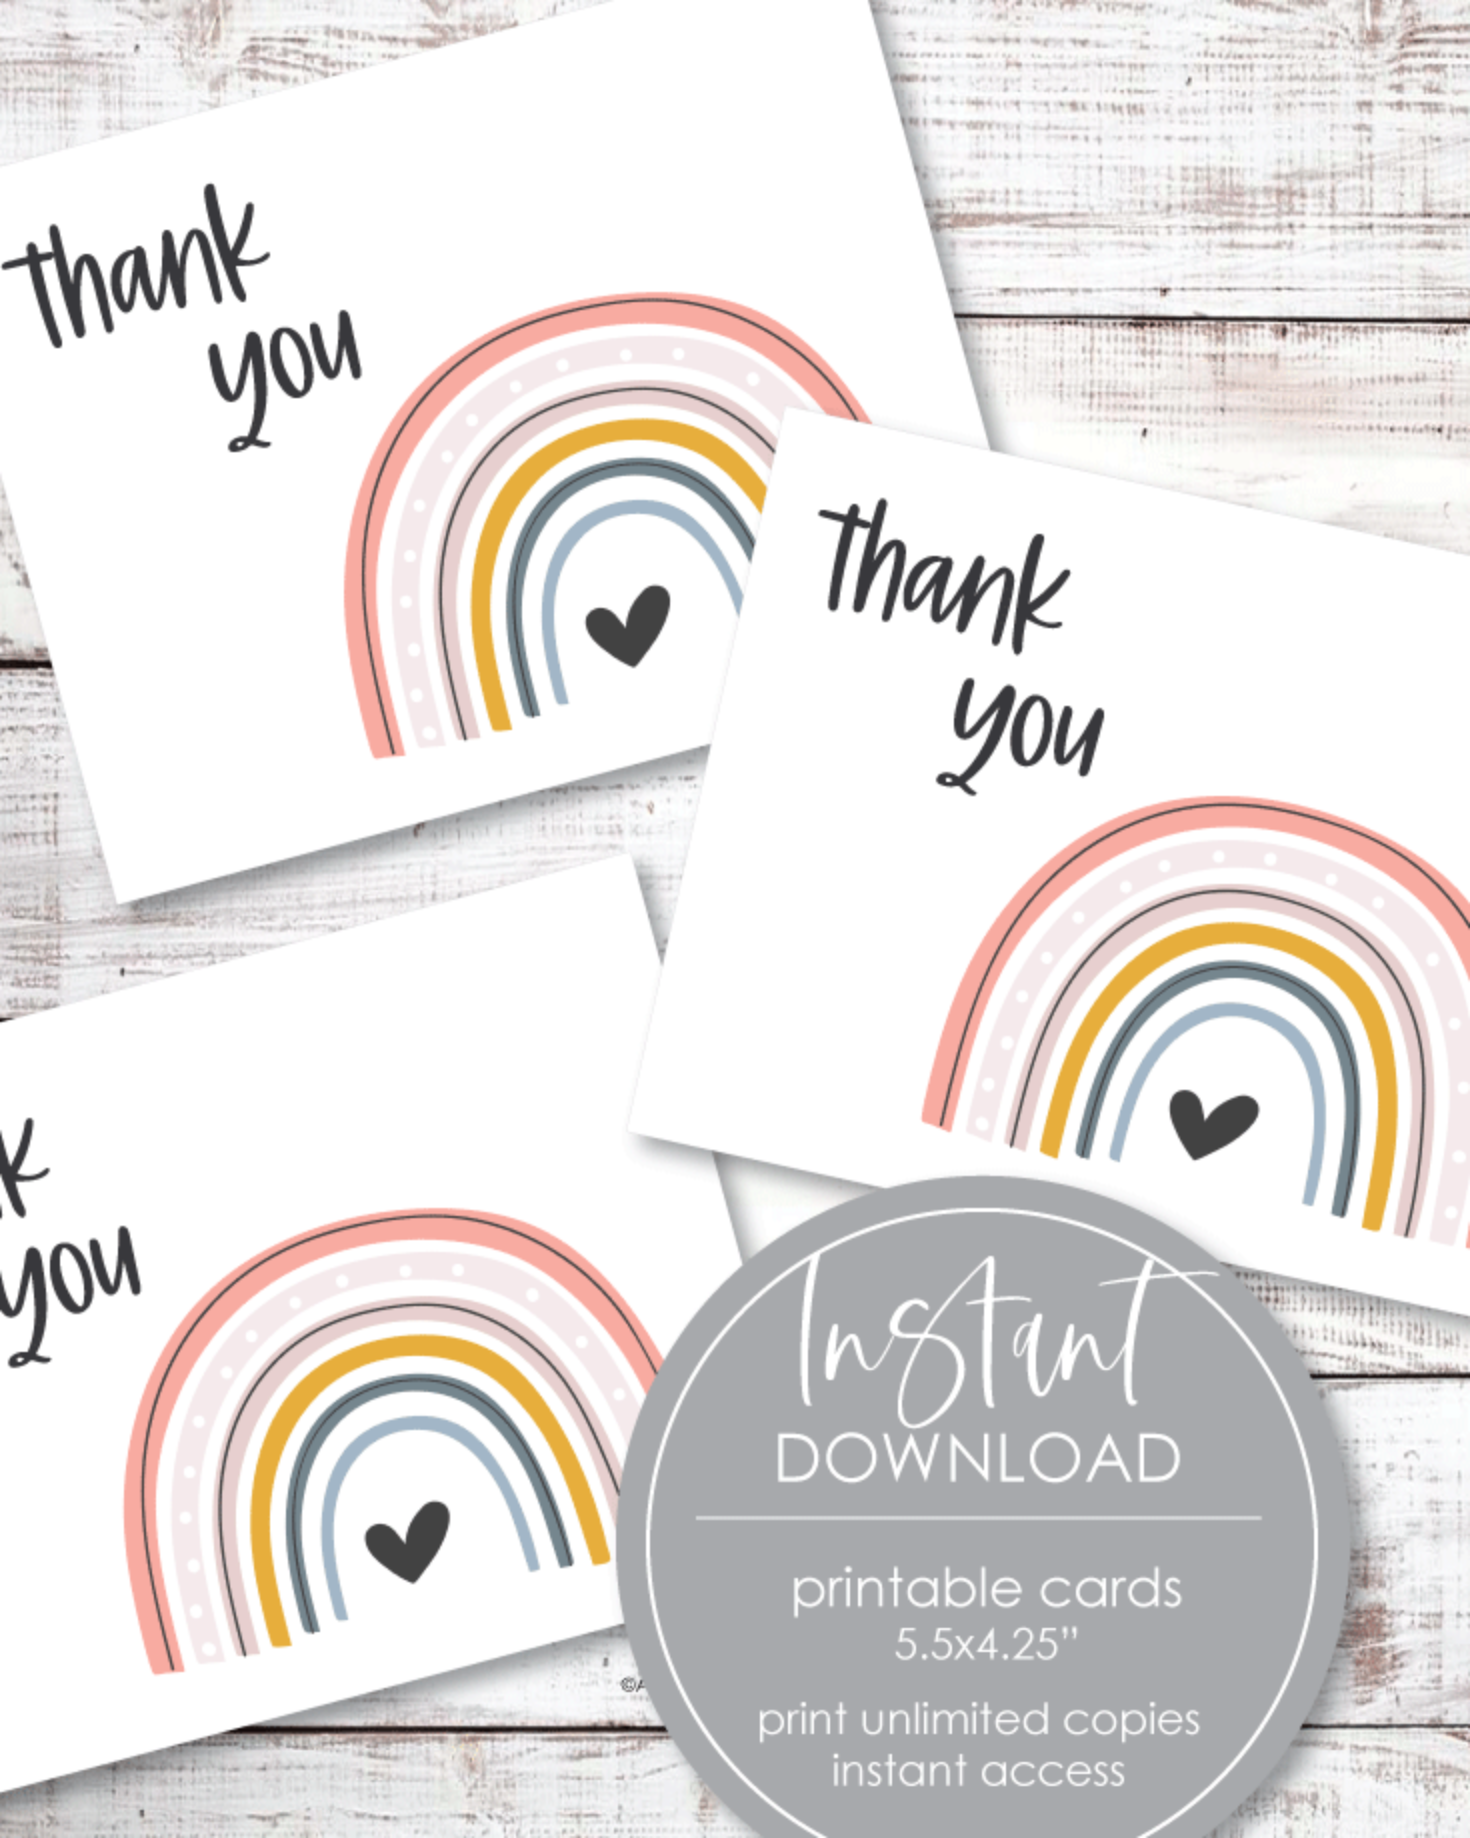 Printable Thank You Card - Boho Rainbow Theme - 5.5 x 4.25